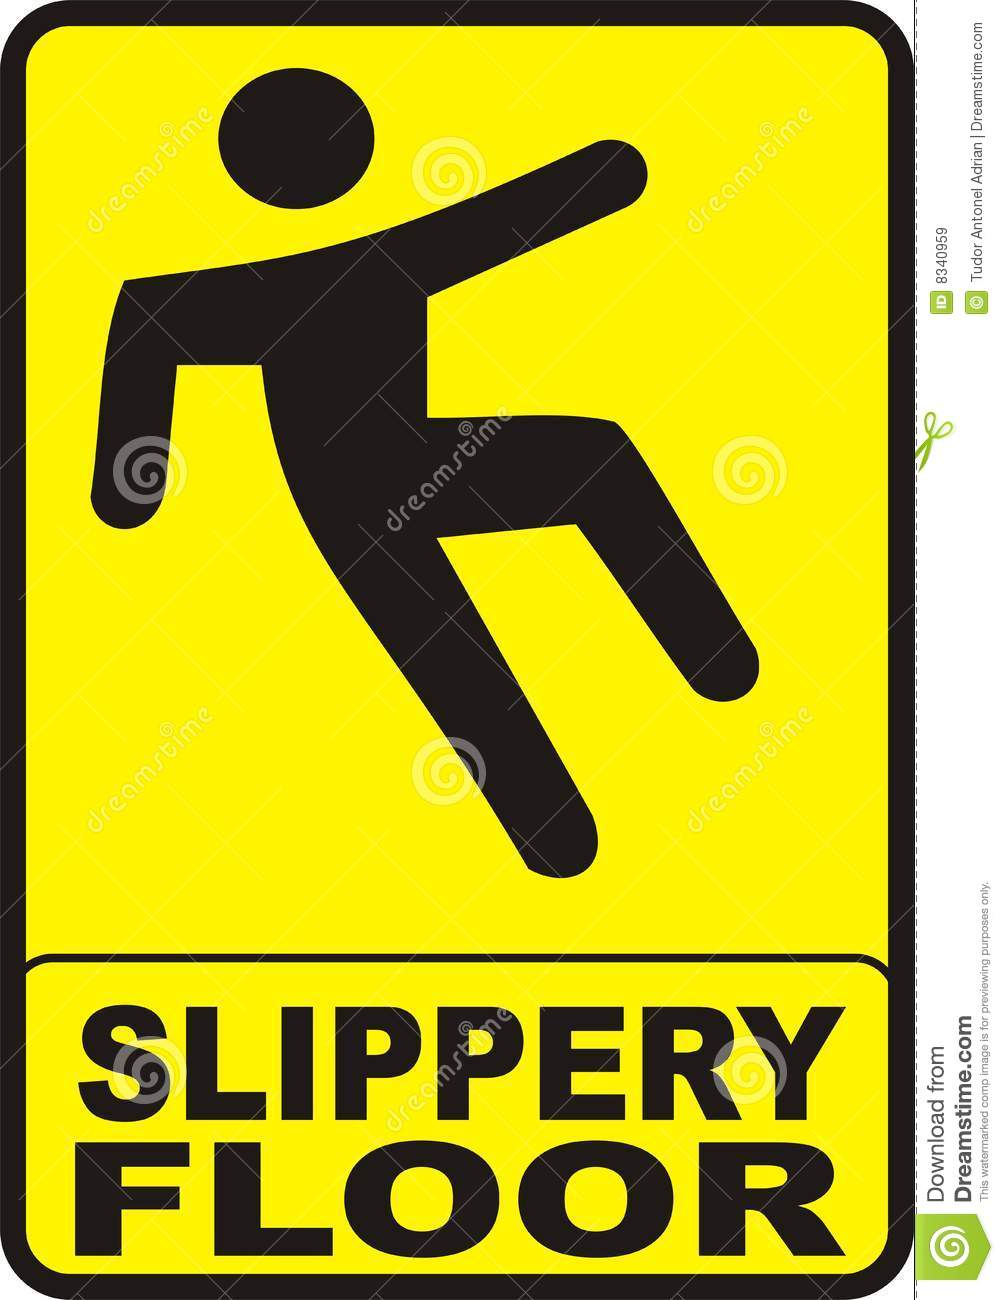 Slippery floor sign royalty free stock images image 8340959 for On the floor on the floor